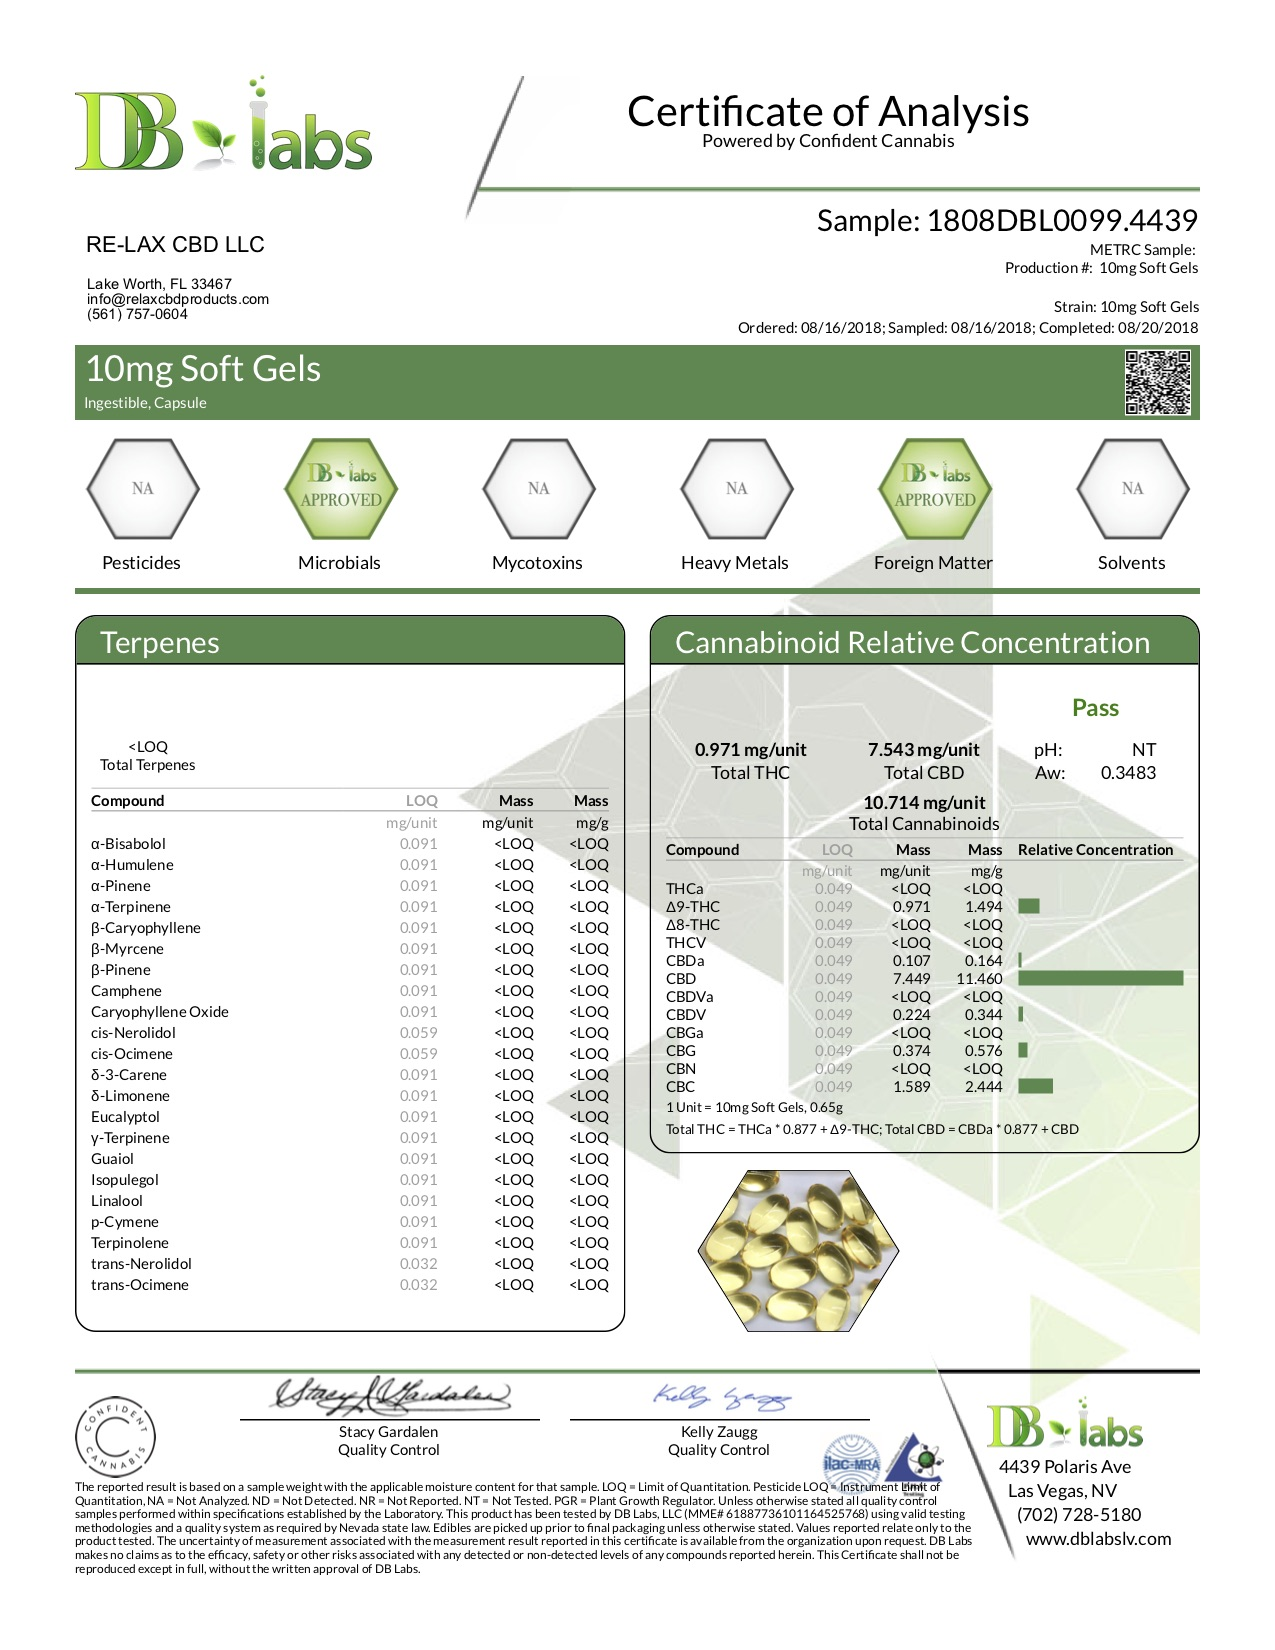 relax cbd lab results capsules